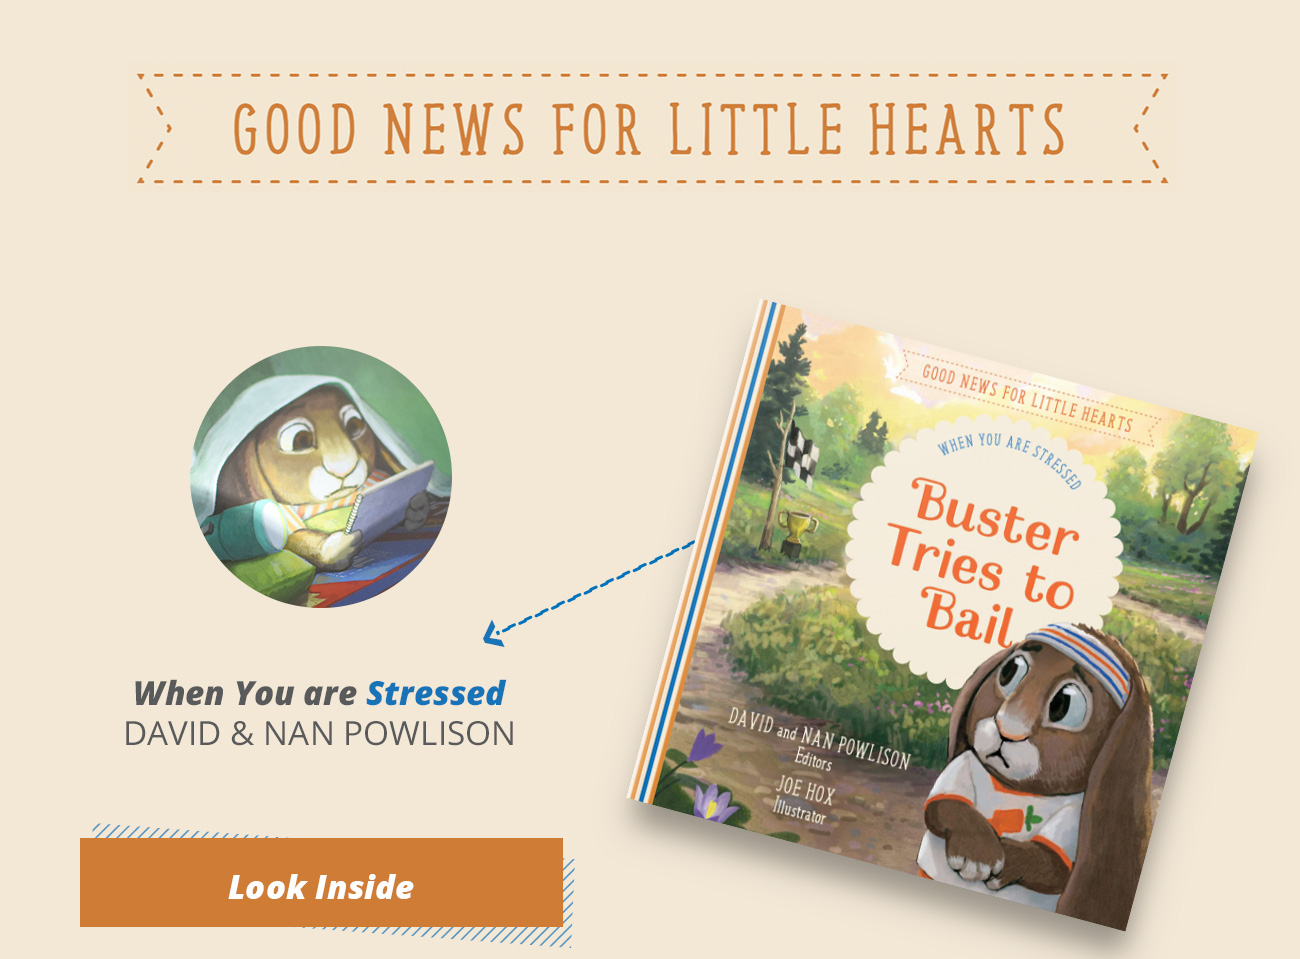 Good News for Little Hearts